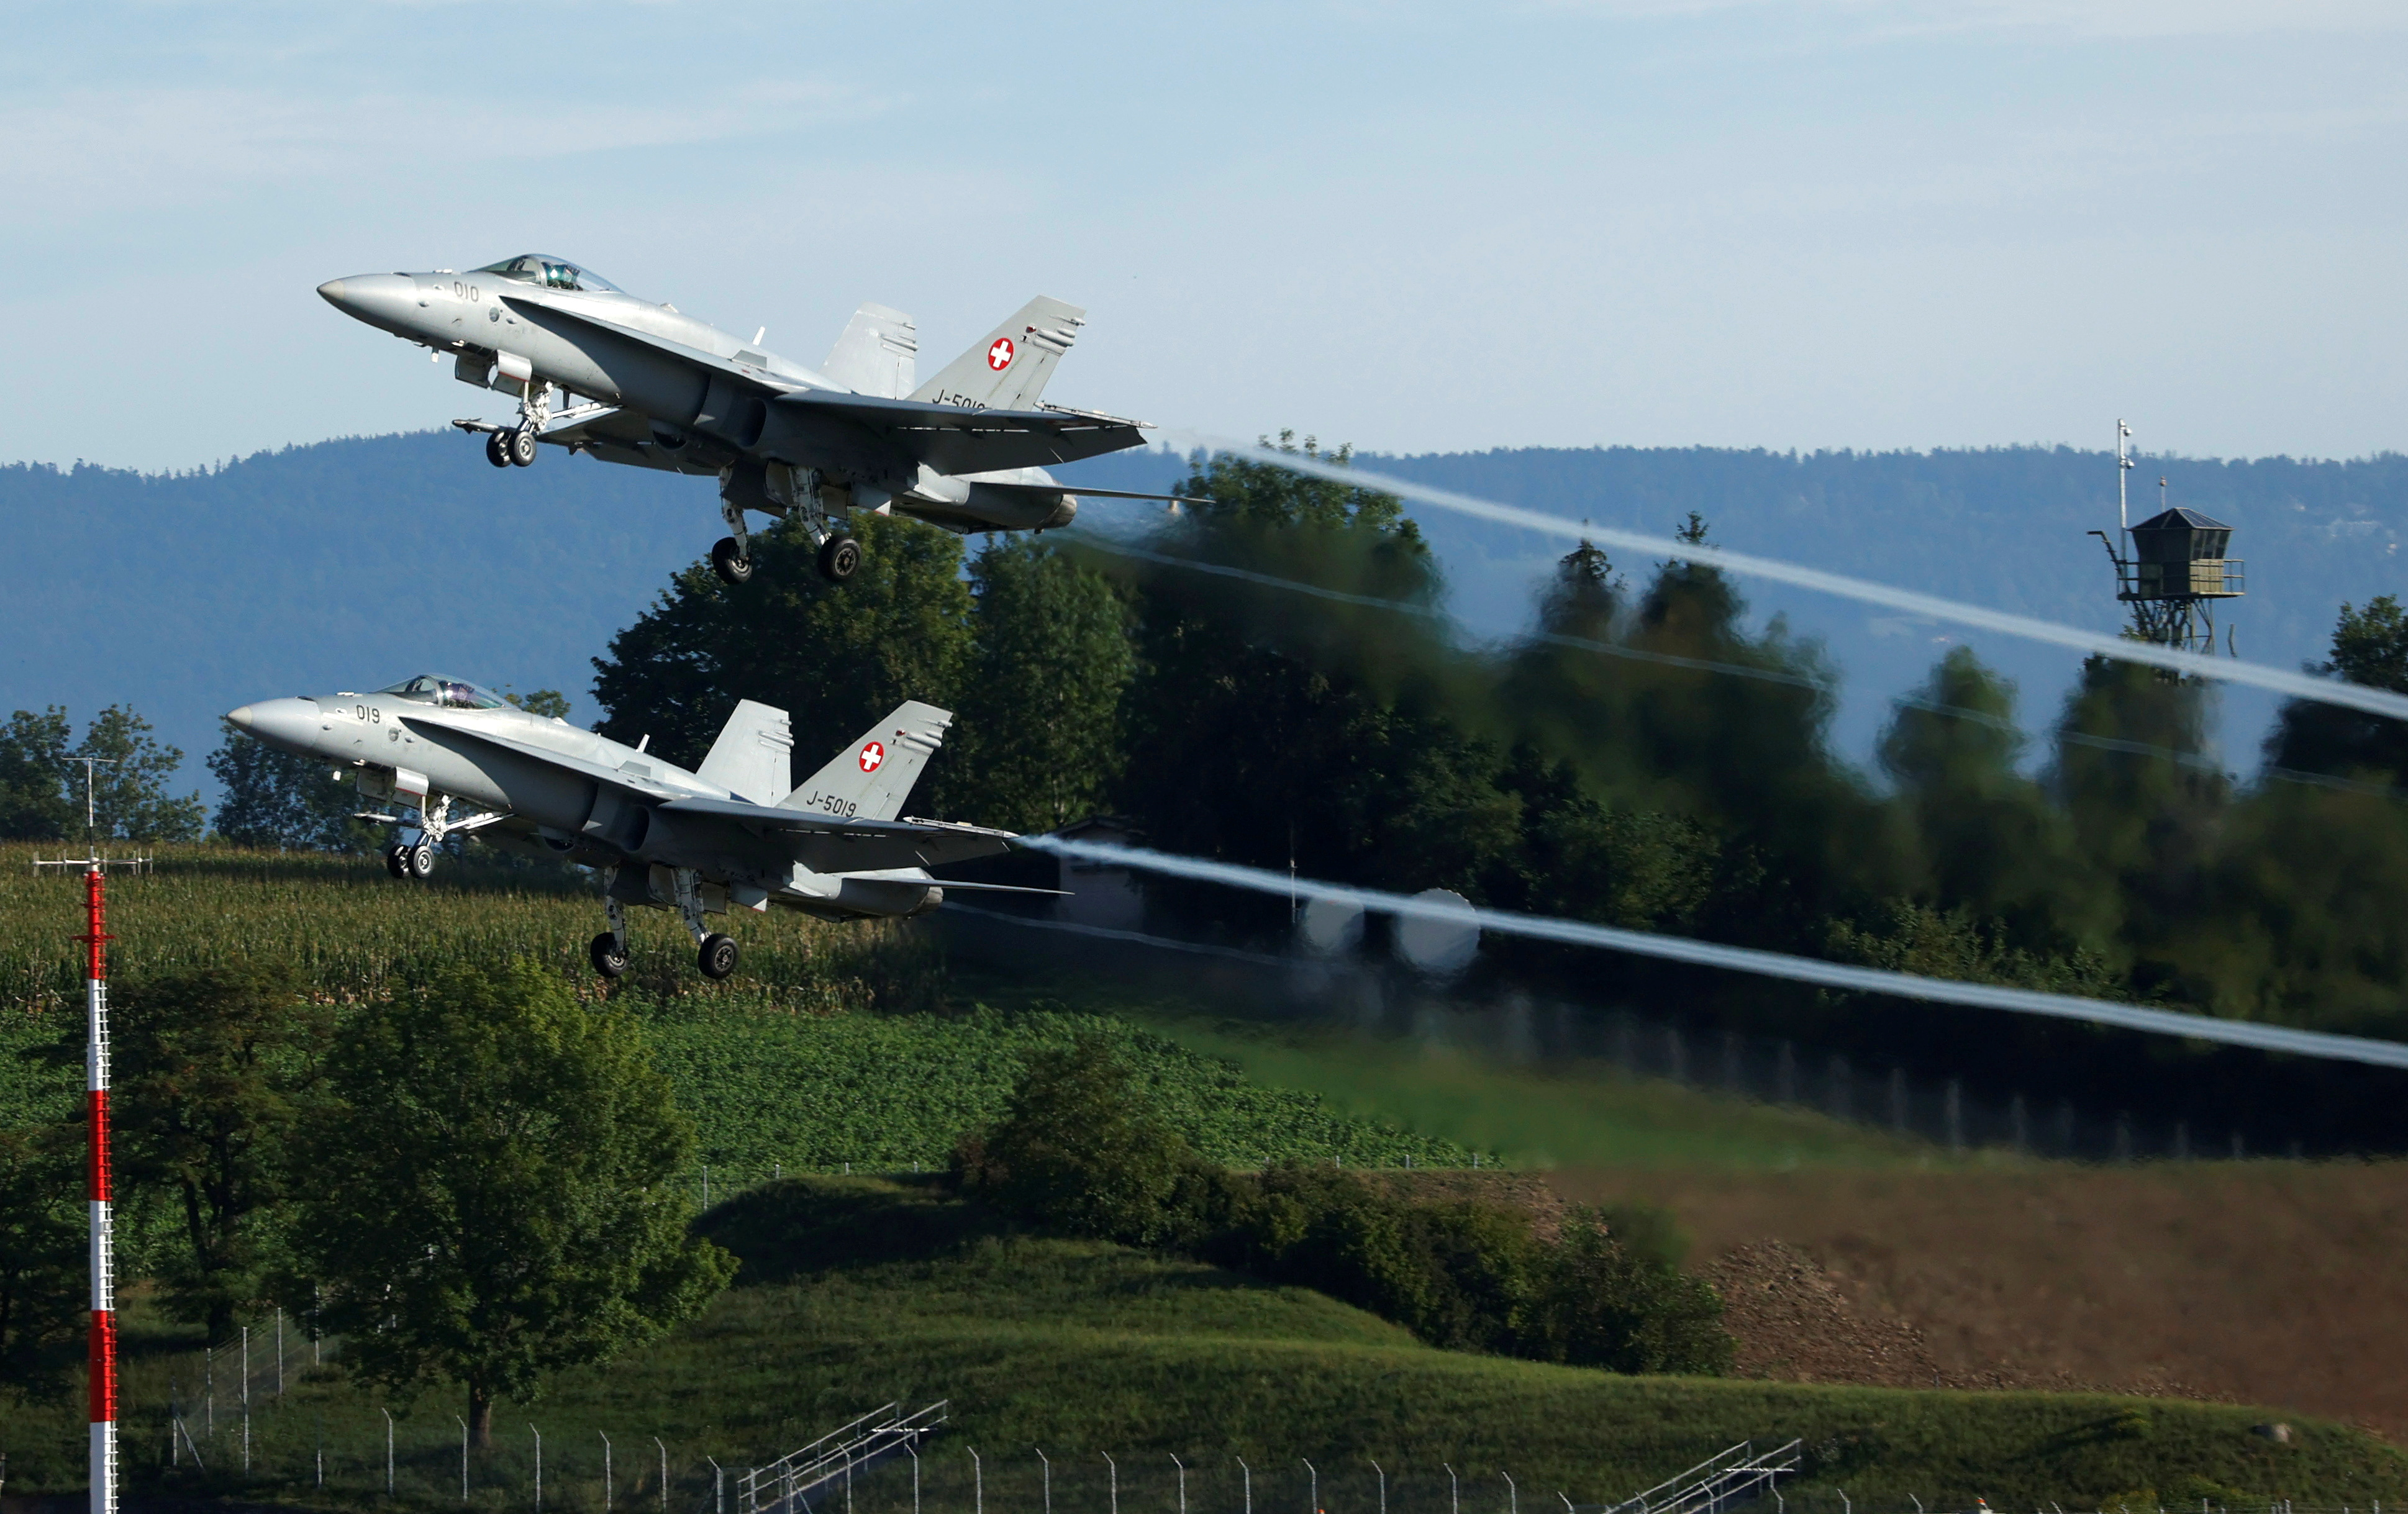 Swiss go American after deciding to buy F-35A fighter jets and Patriot missiles